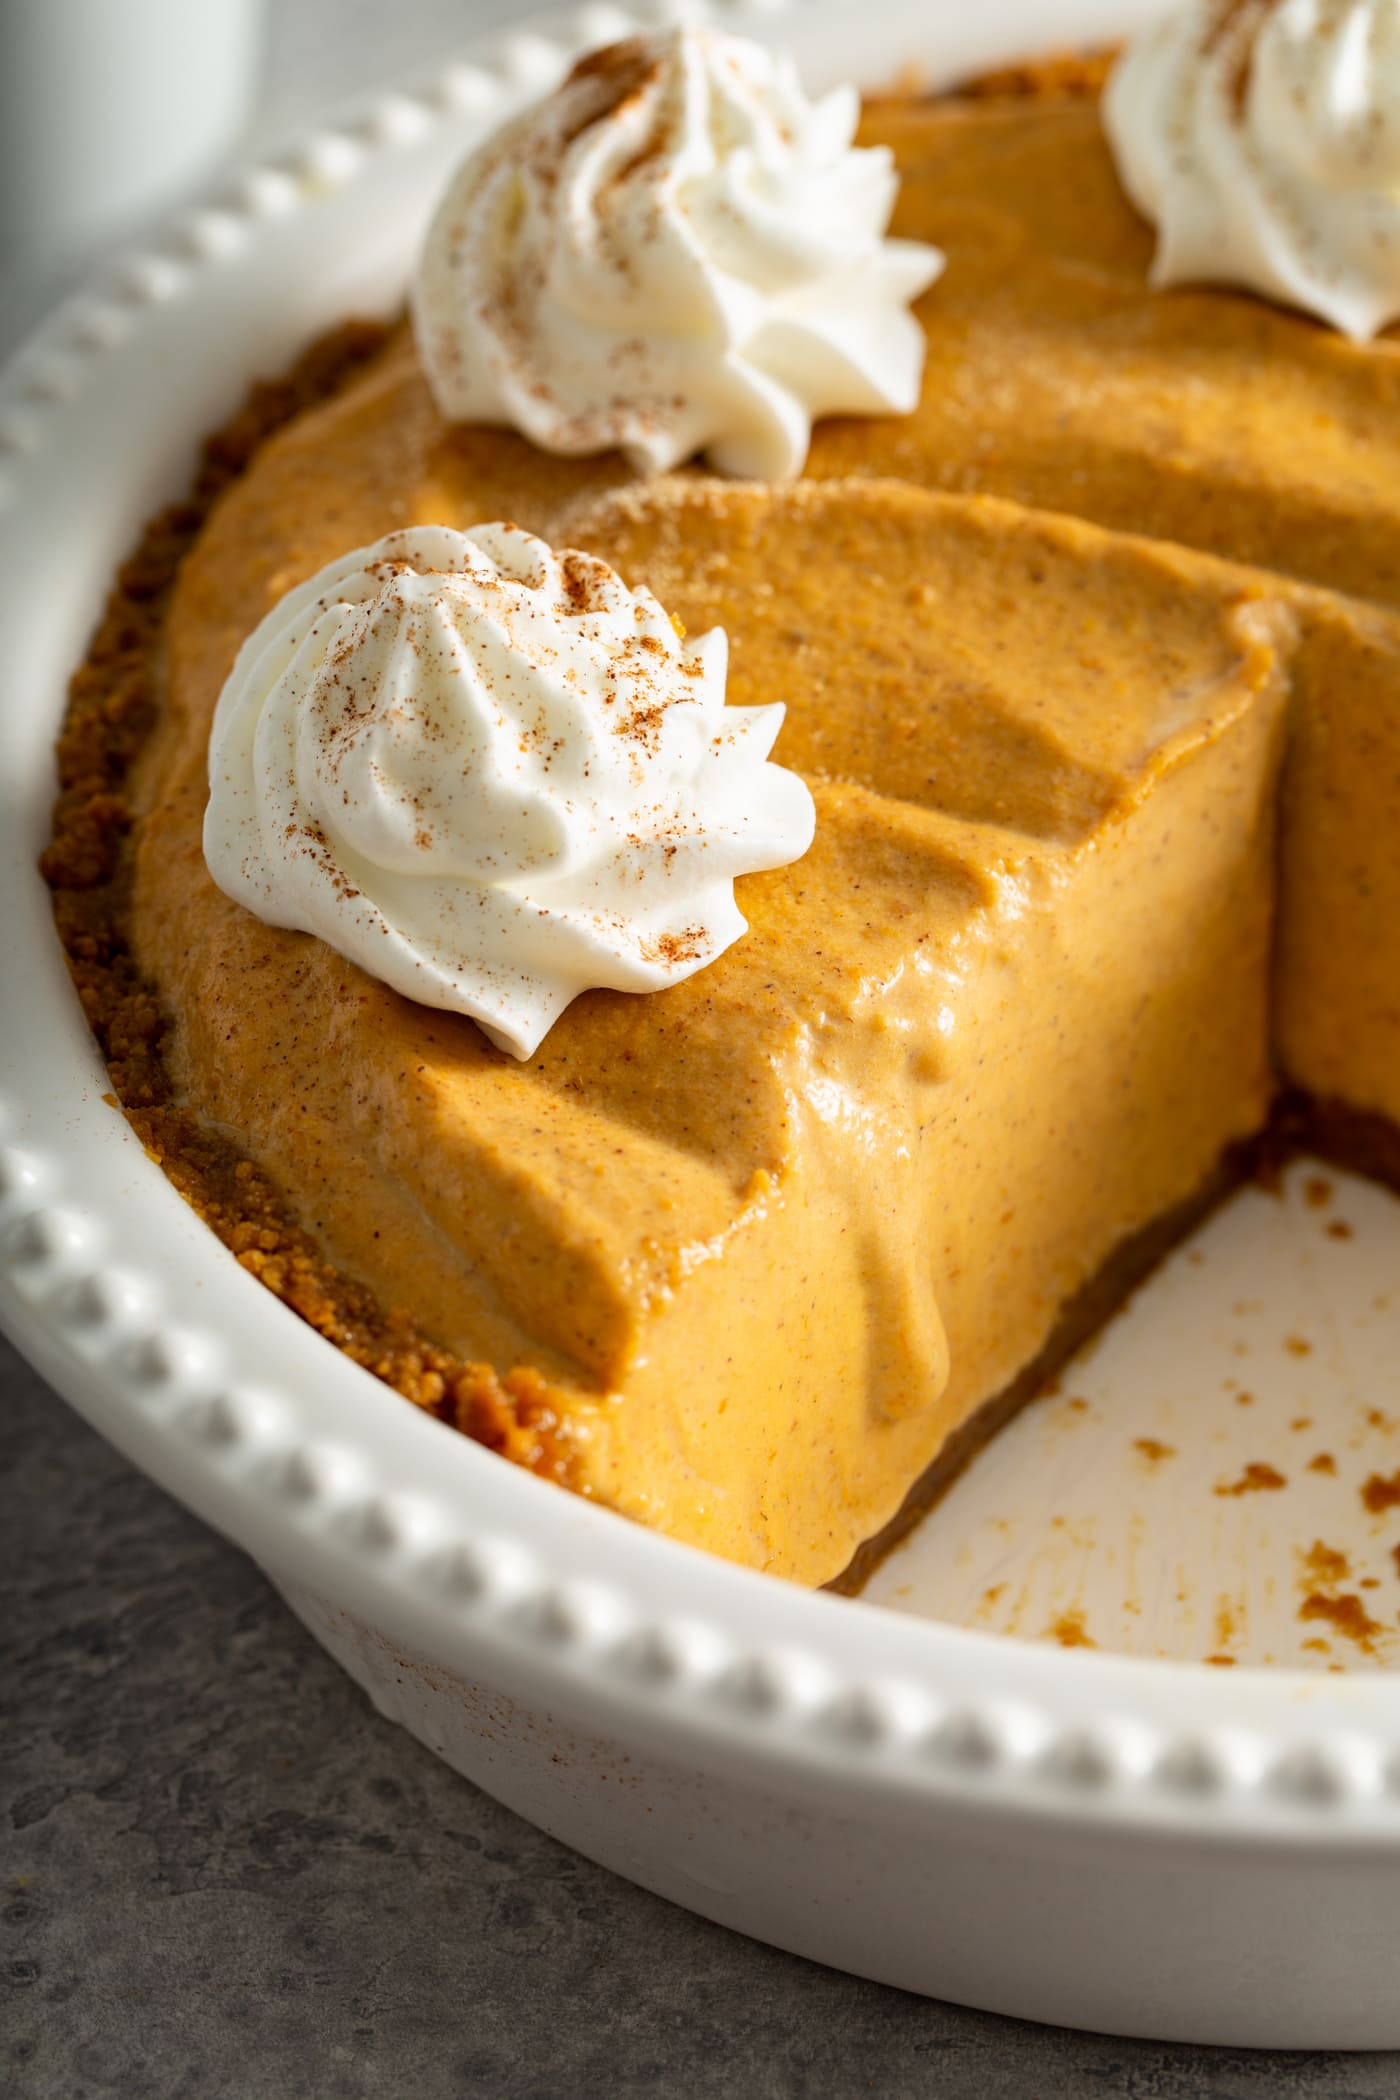 A pumpkin ice cream pie in a white pie dish with a slice removed. The pie has dollops of whipped cream sprinkled with cinnamon on top.